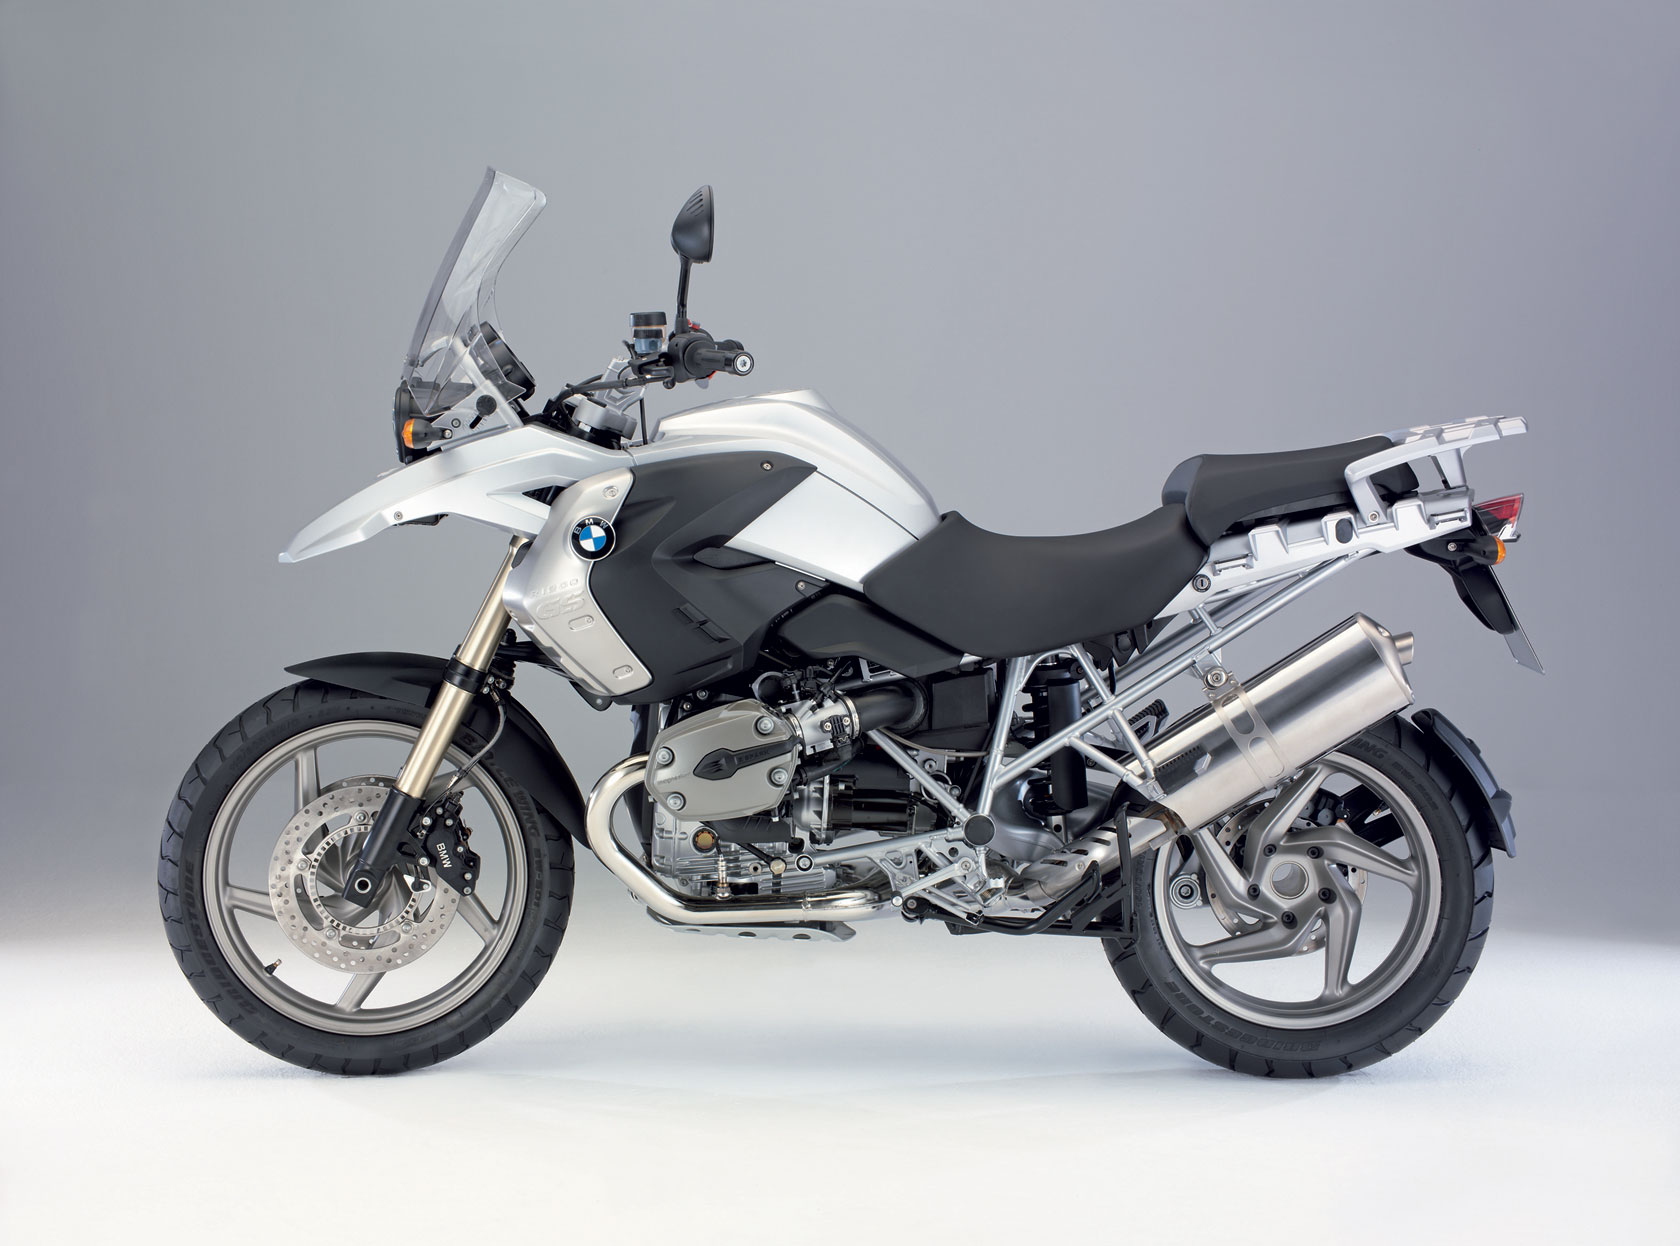 Bmw r1200gs photo - 1